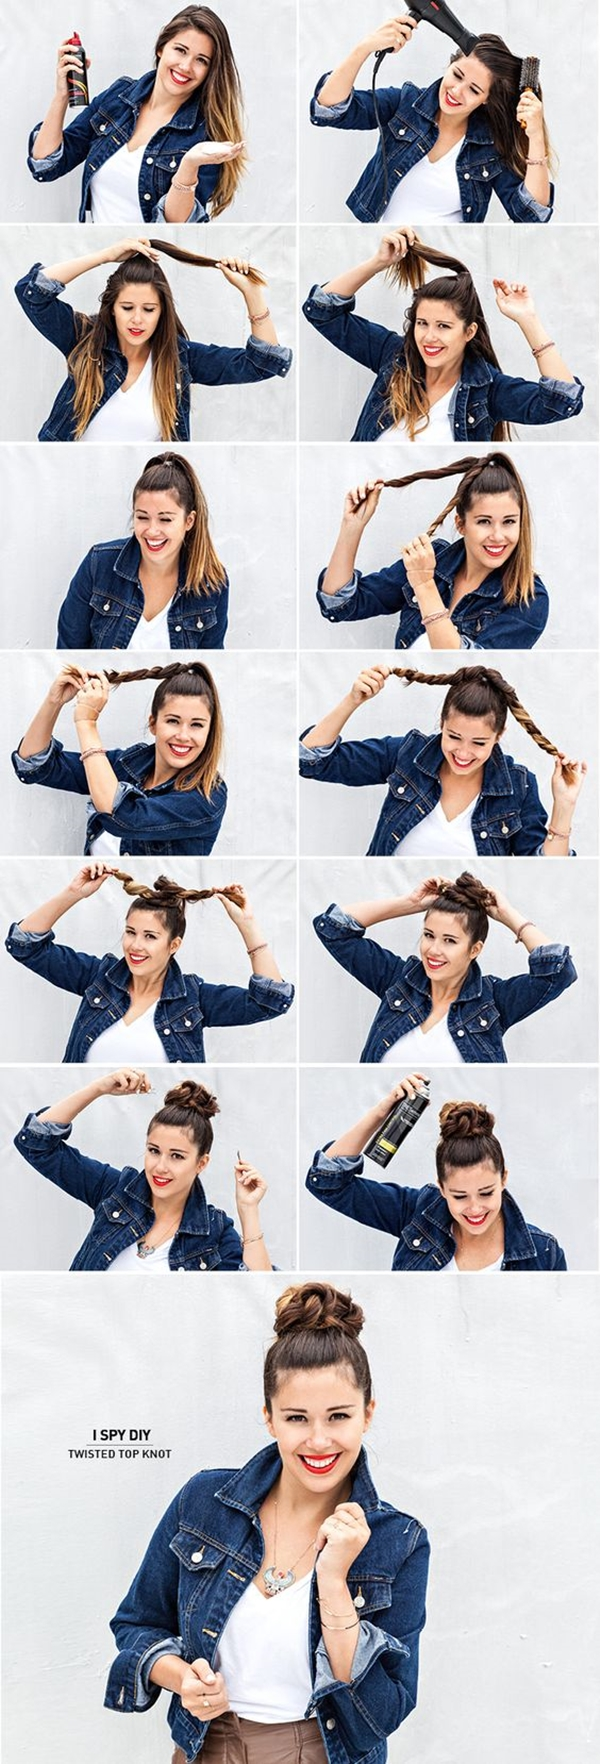 How to Make Bun Hairstyles - 2